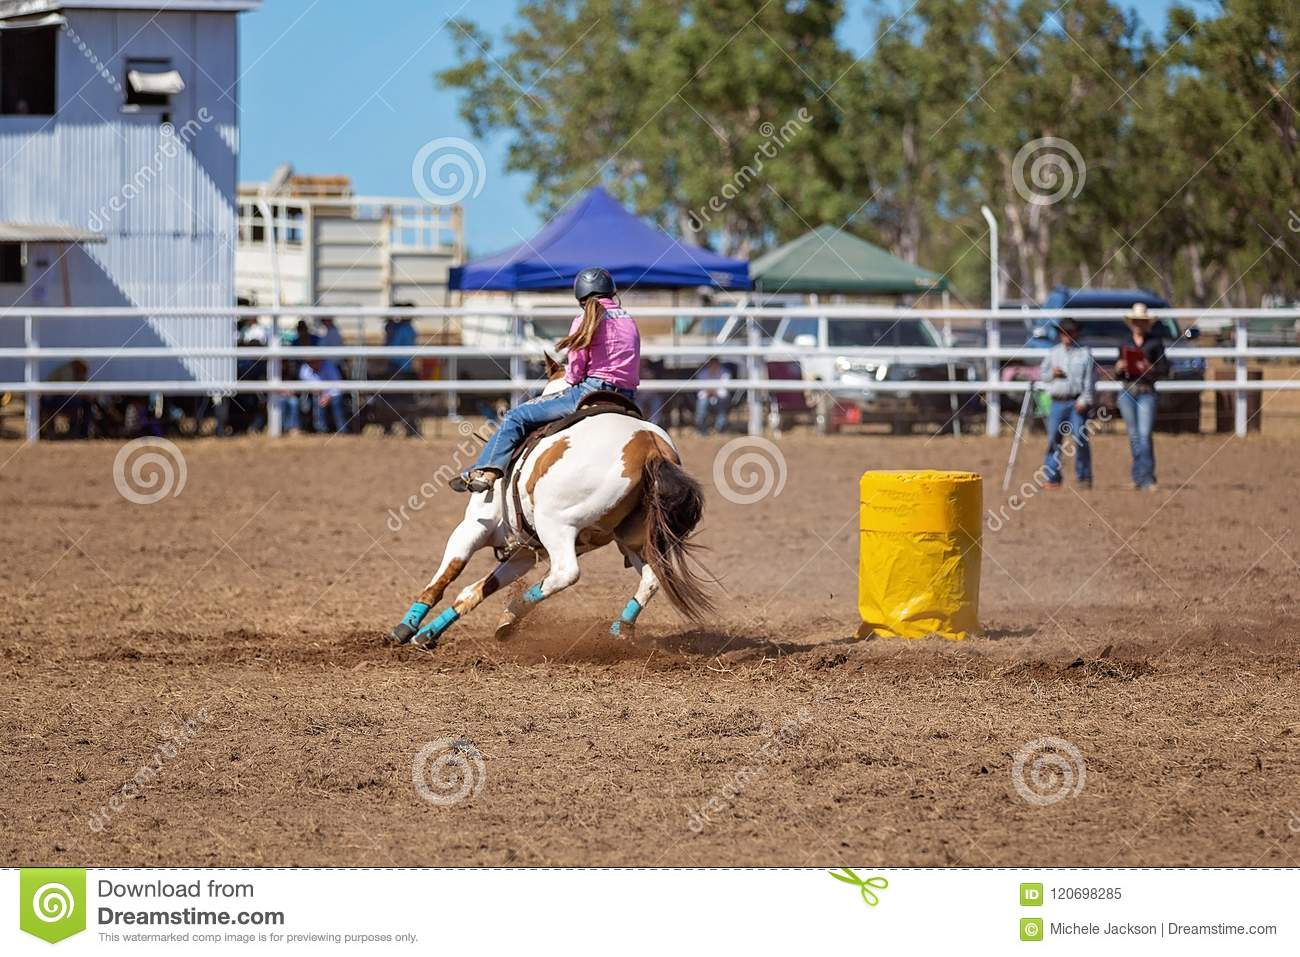 Cowgirl Competing In Barrel Racing Competition At A Rodeo